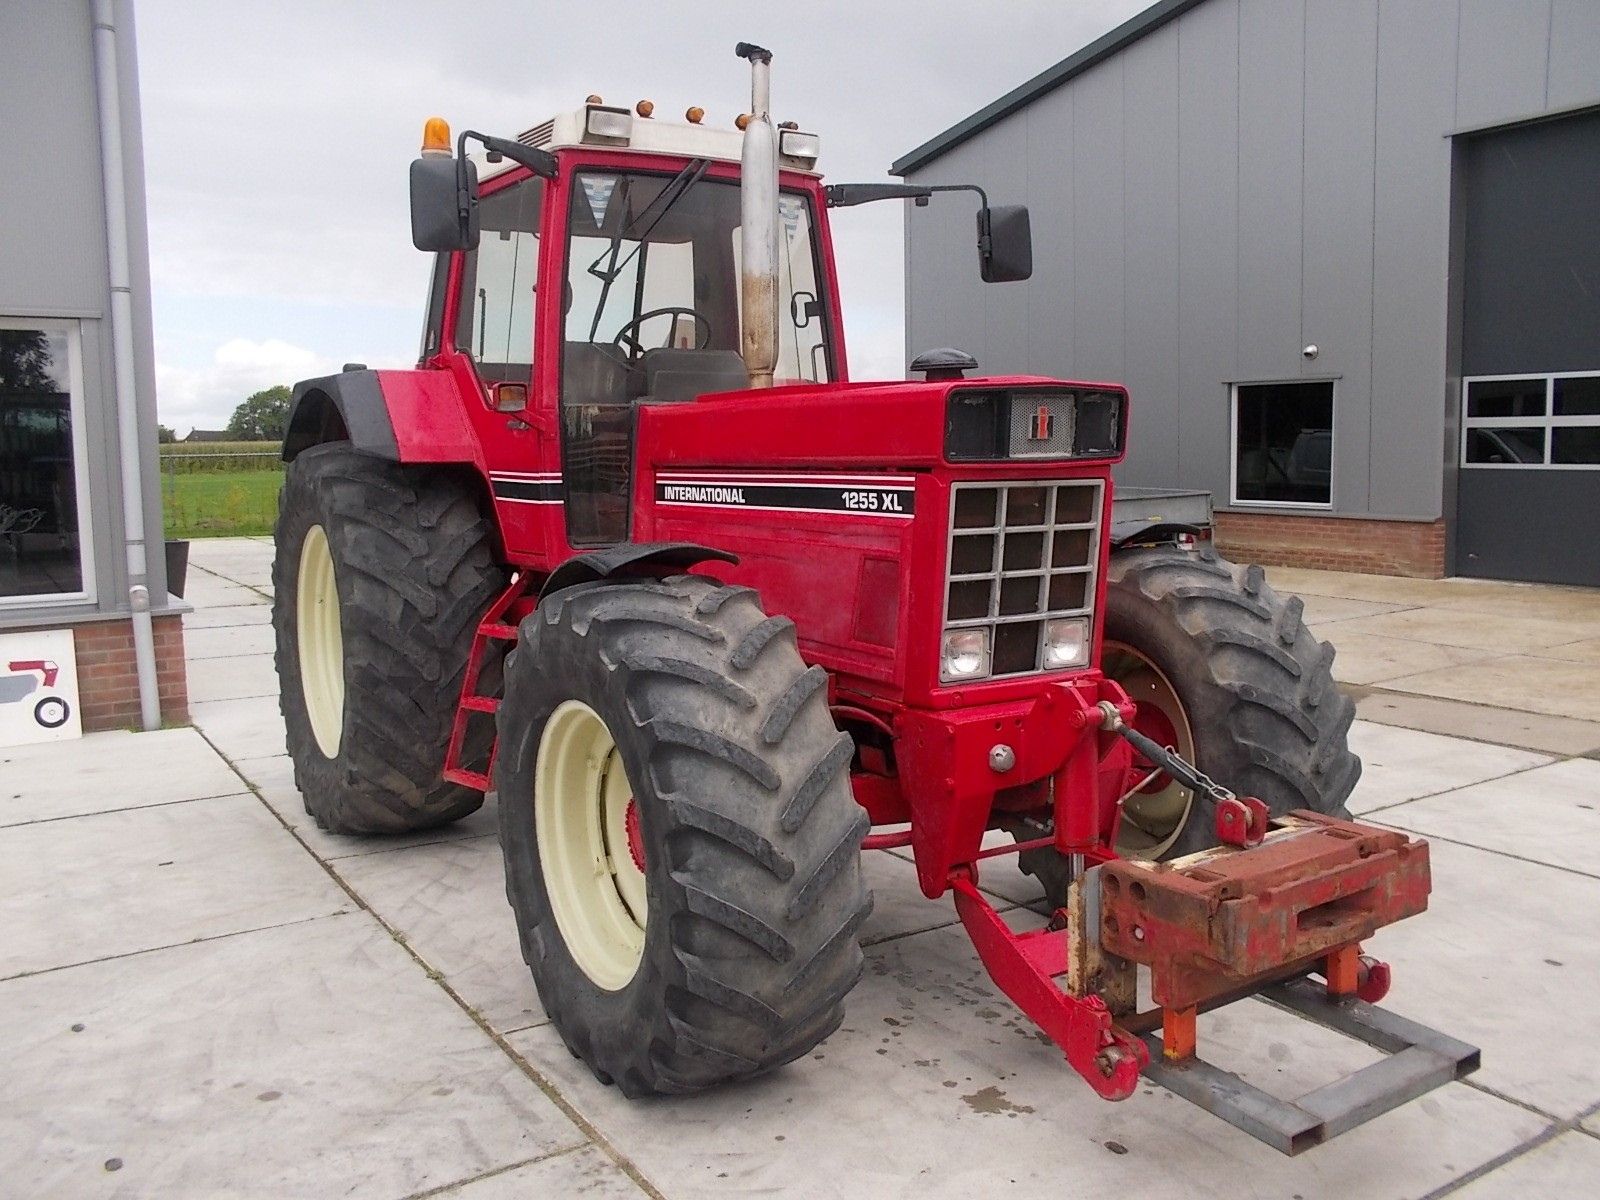 International 1255 XL